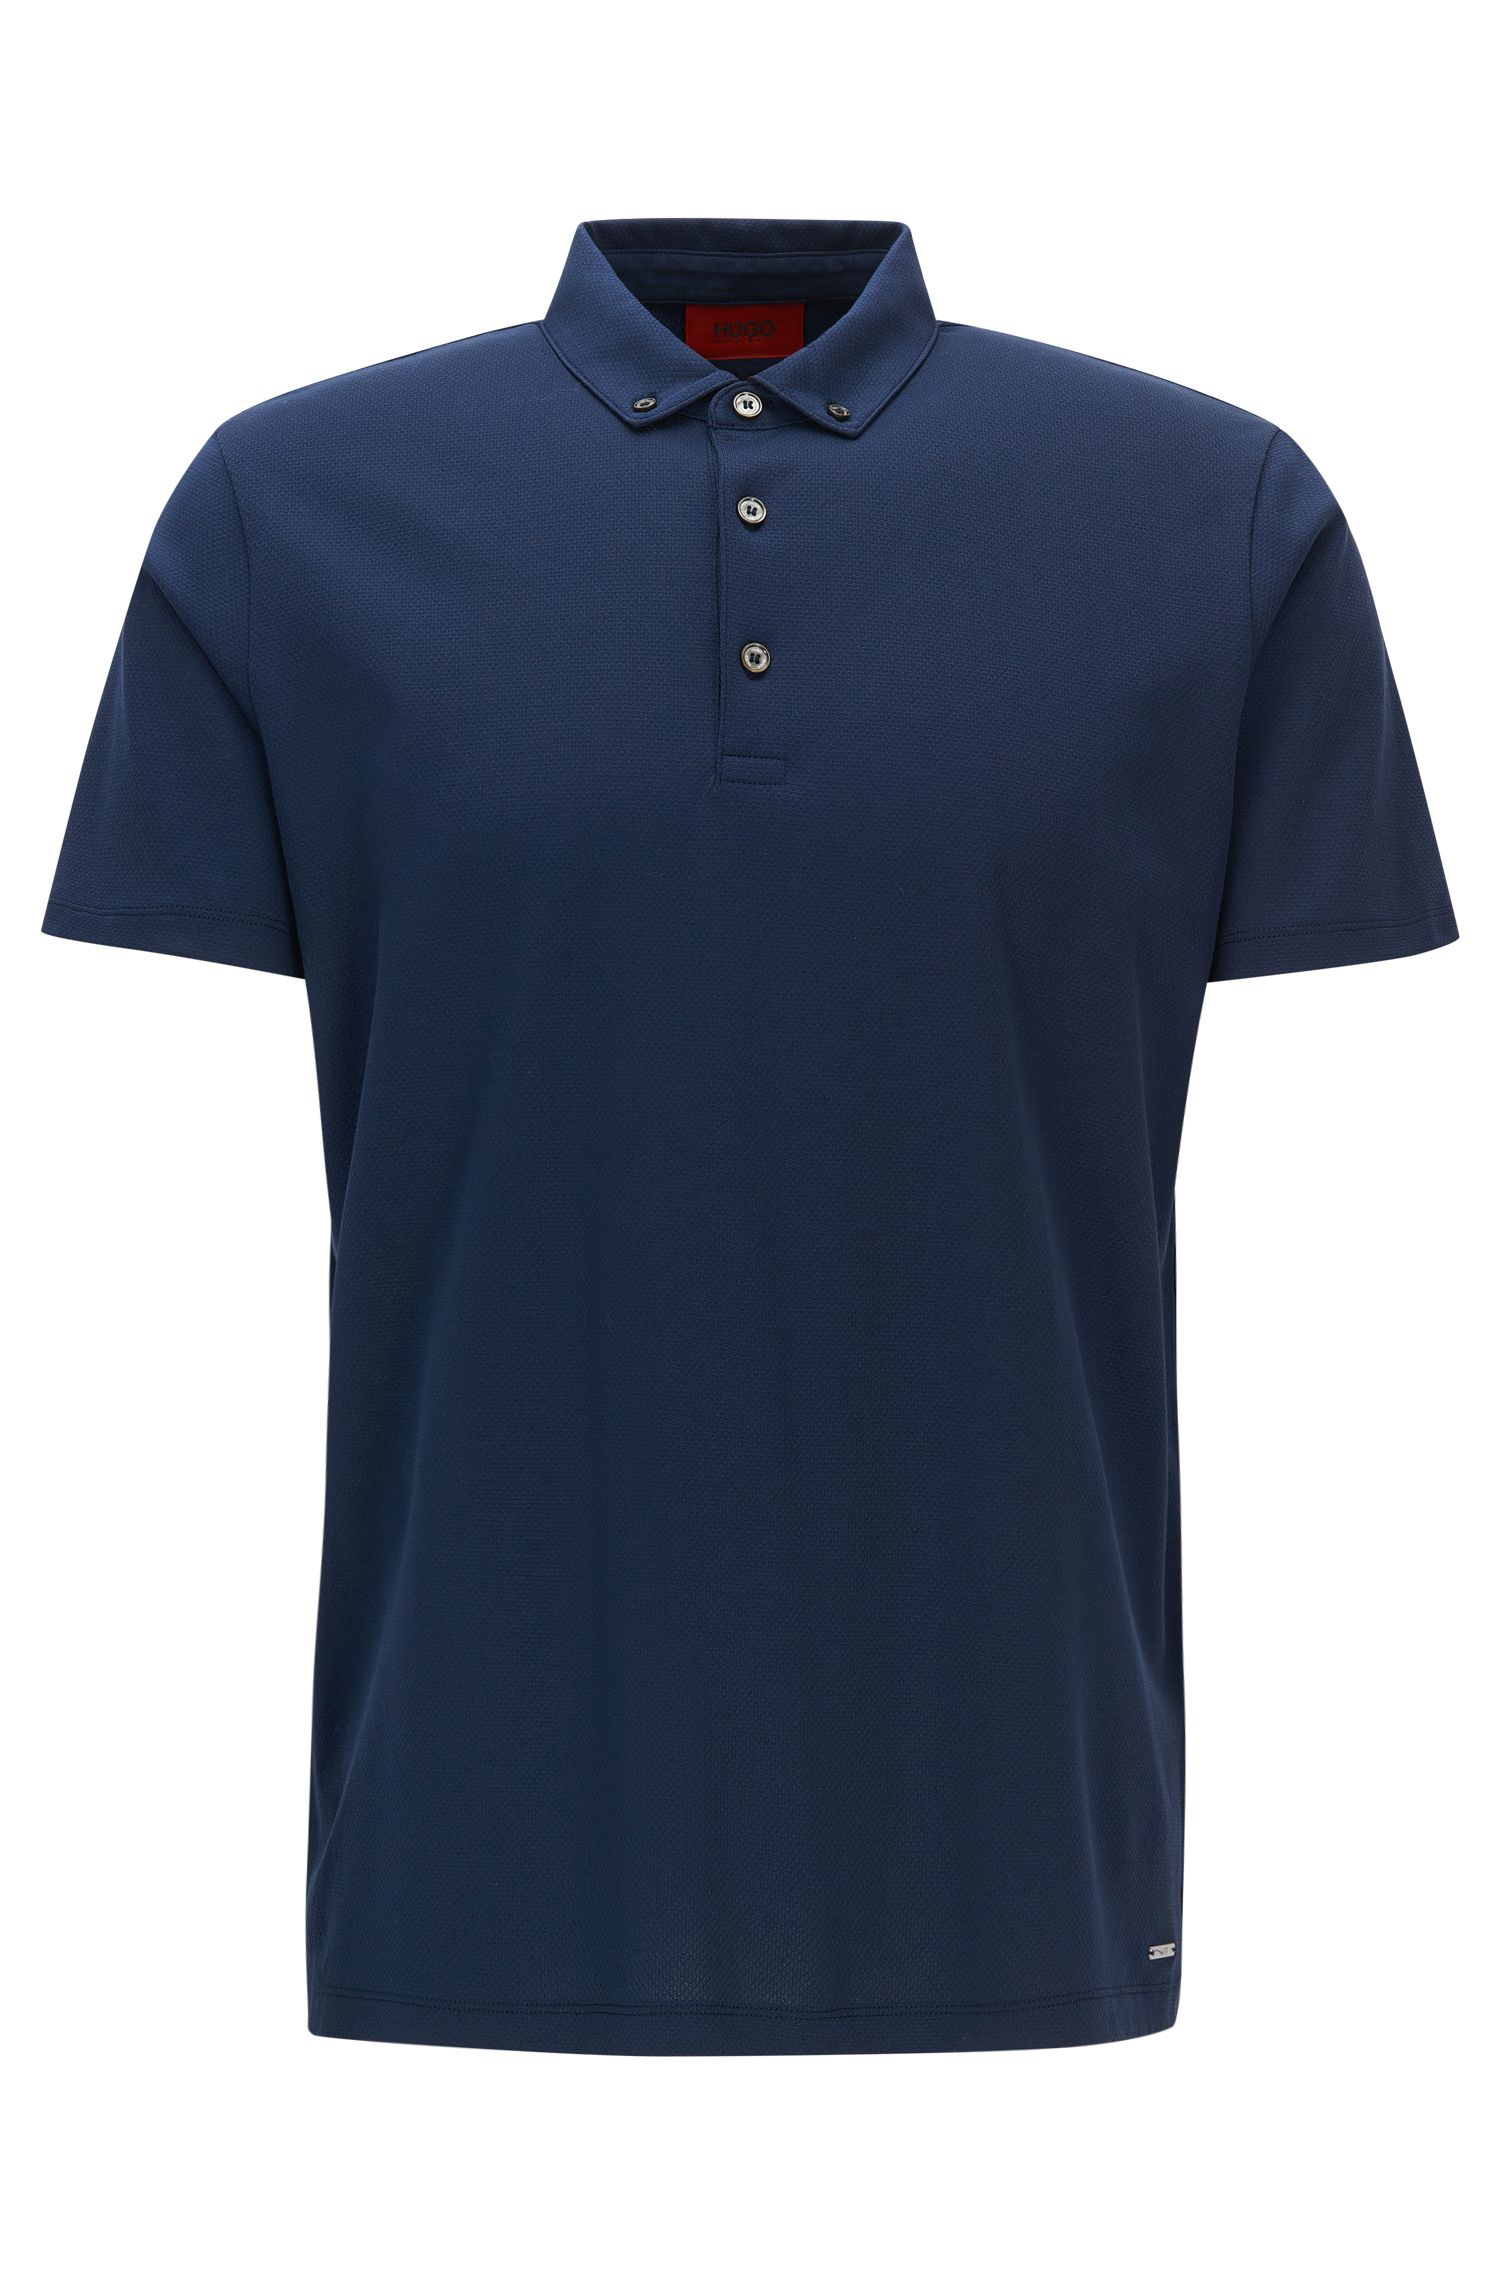 Polo regular fit en jacquard de algodón